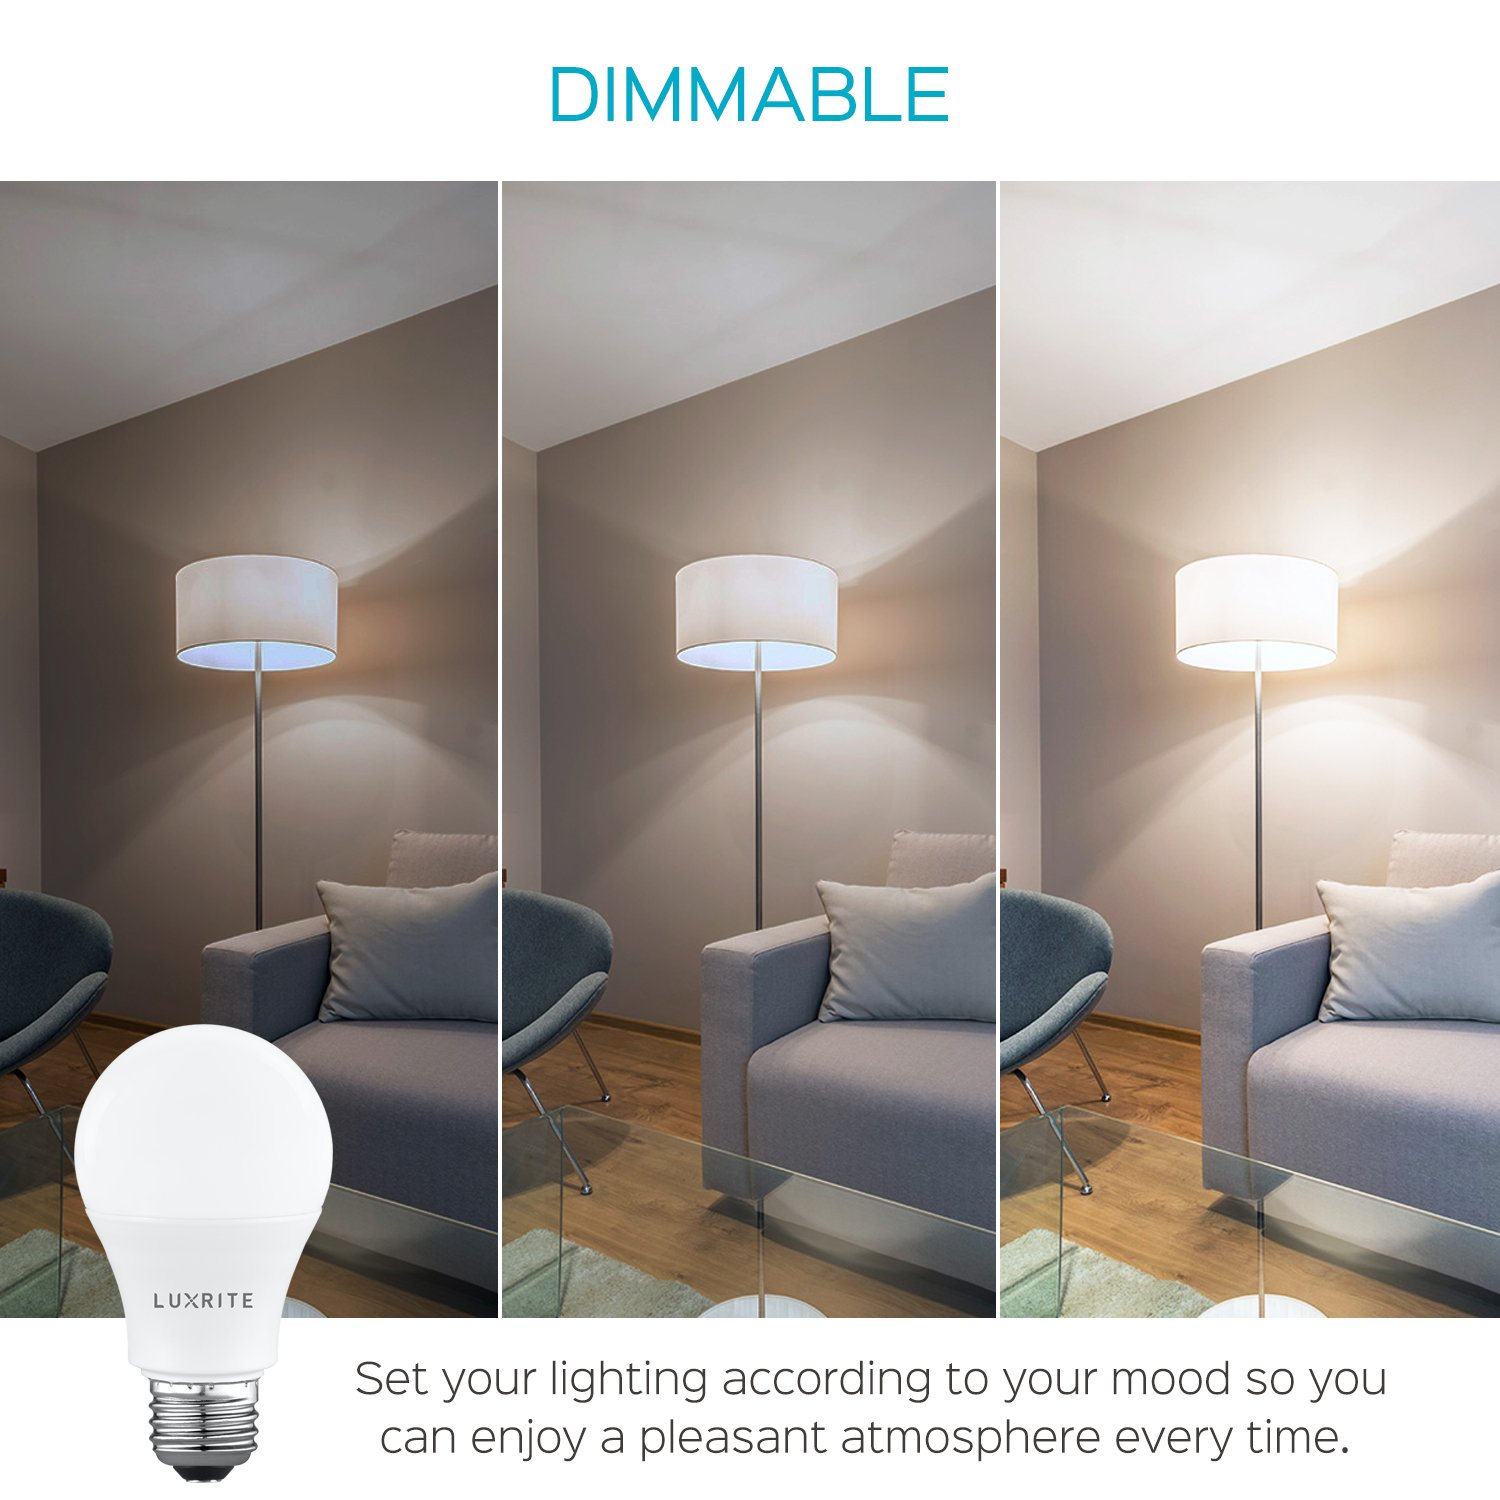 Energy Star Standard LED Bulb 9W 8 Pack 800 Lumens Perfect for Lamps and Home Lighting Luxrite A19 LED Light Bulb 60W Equivalent 5000K Daylight White Dimmable E26 Base Enclosed Fixture Rated